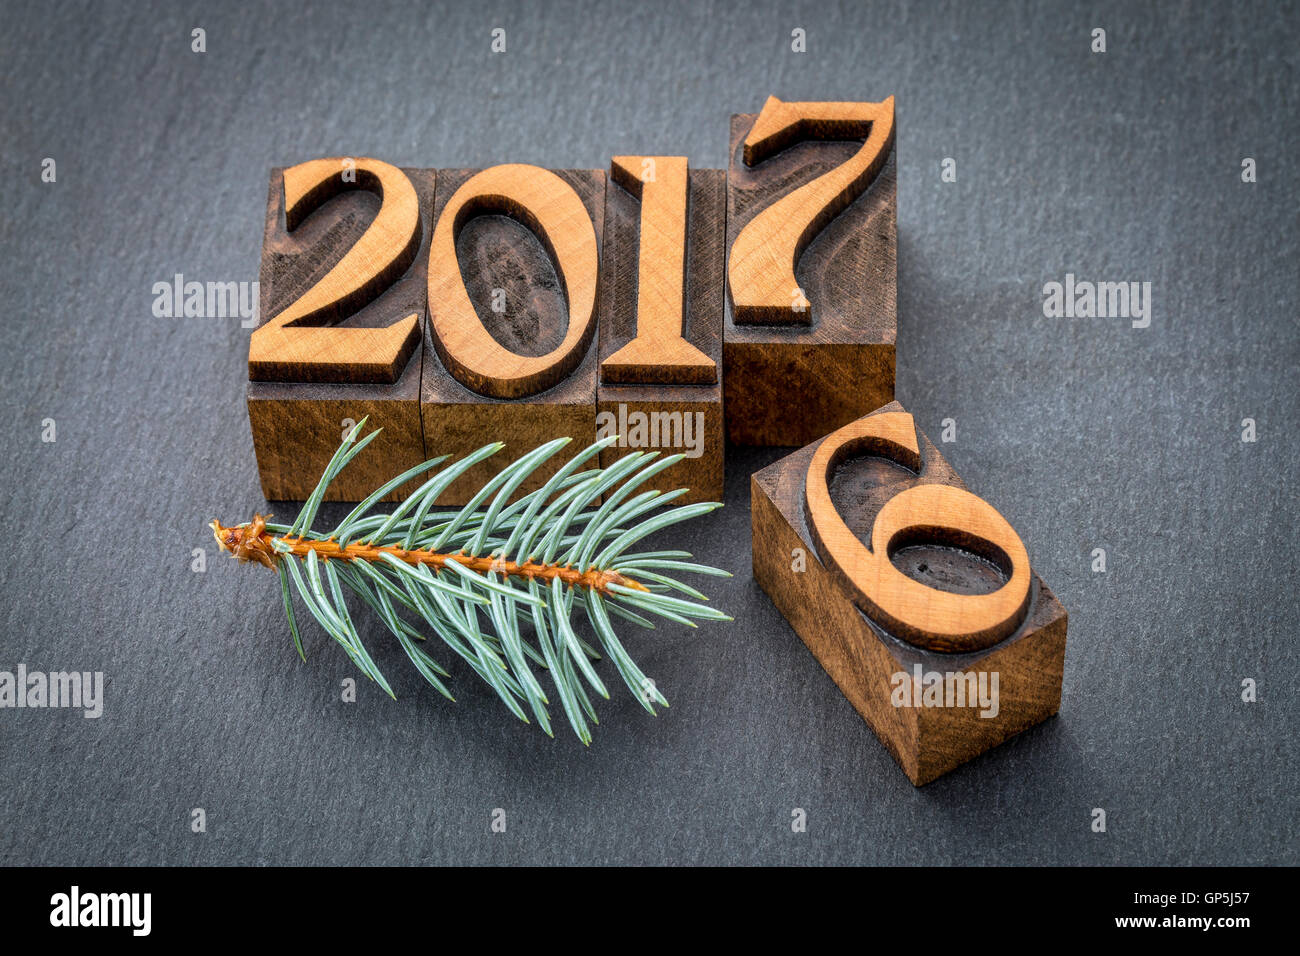 new year 2017 replacing the old year 2016 - letterpress wood type printing blocks on a slate stone - Stock Image